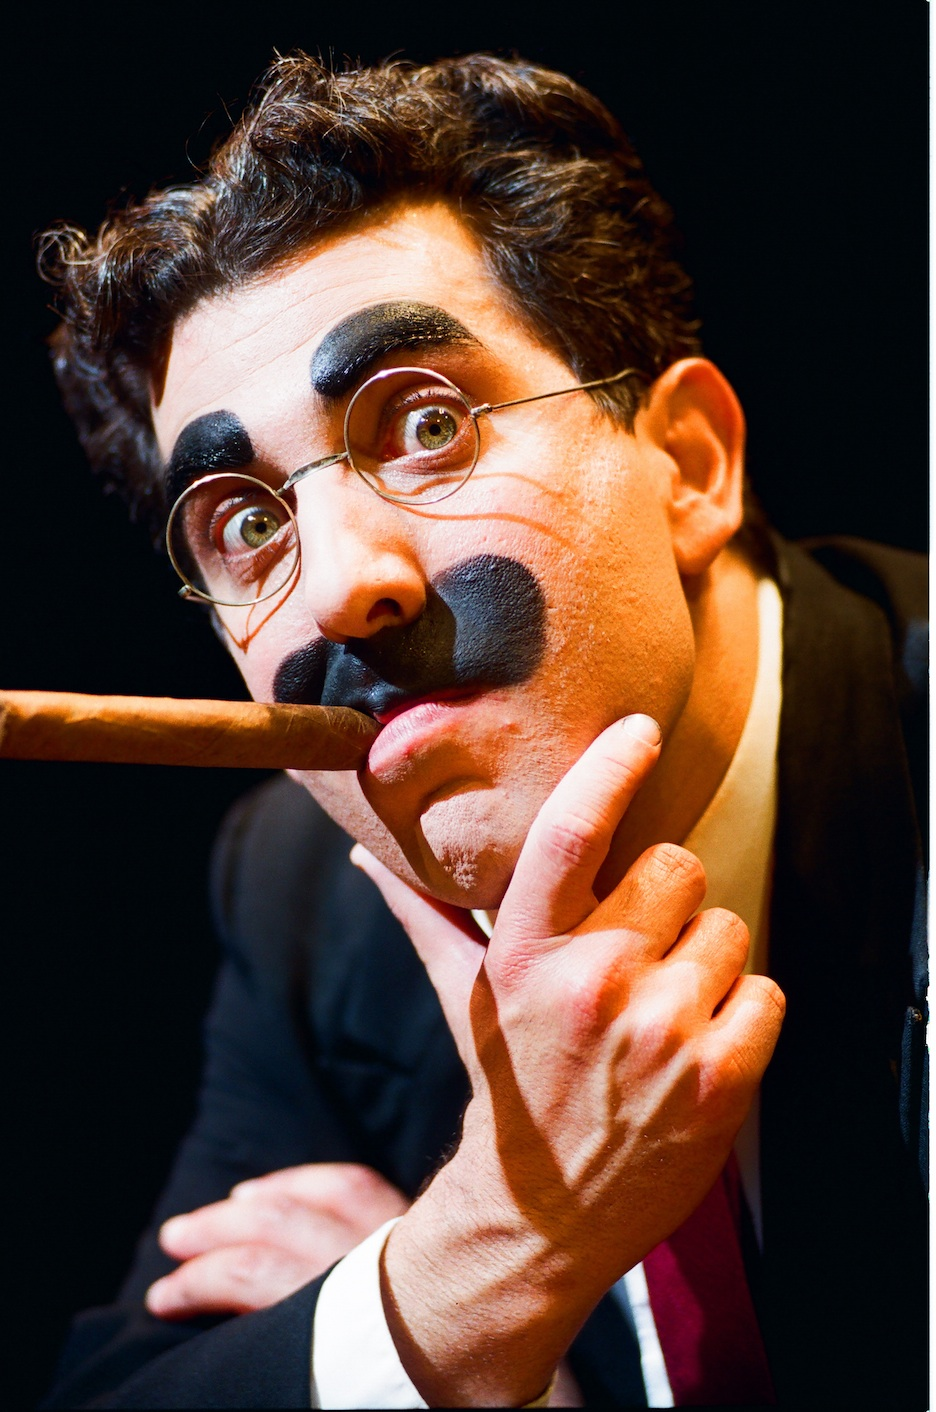 Click photo to download. Caption: Frank Ferrante, with cigar, as Groucho Marx. Credit: Drew Altizer.